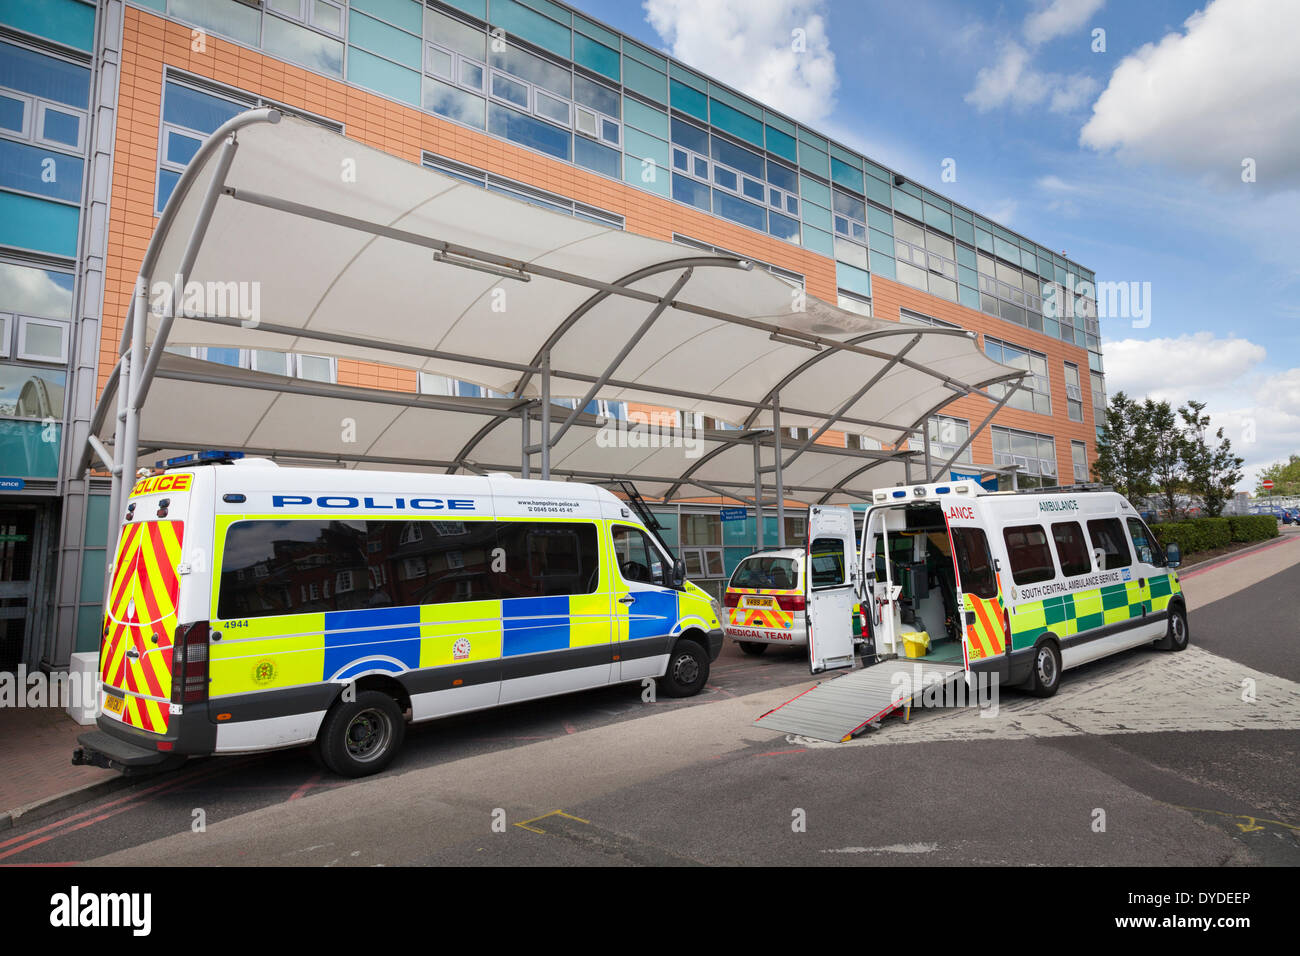 Police van and ambulance with open door at Southampton General Hospital. - Stock Image